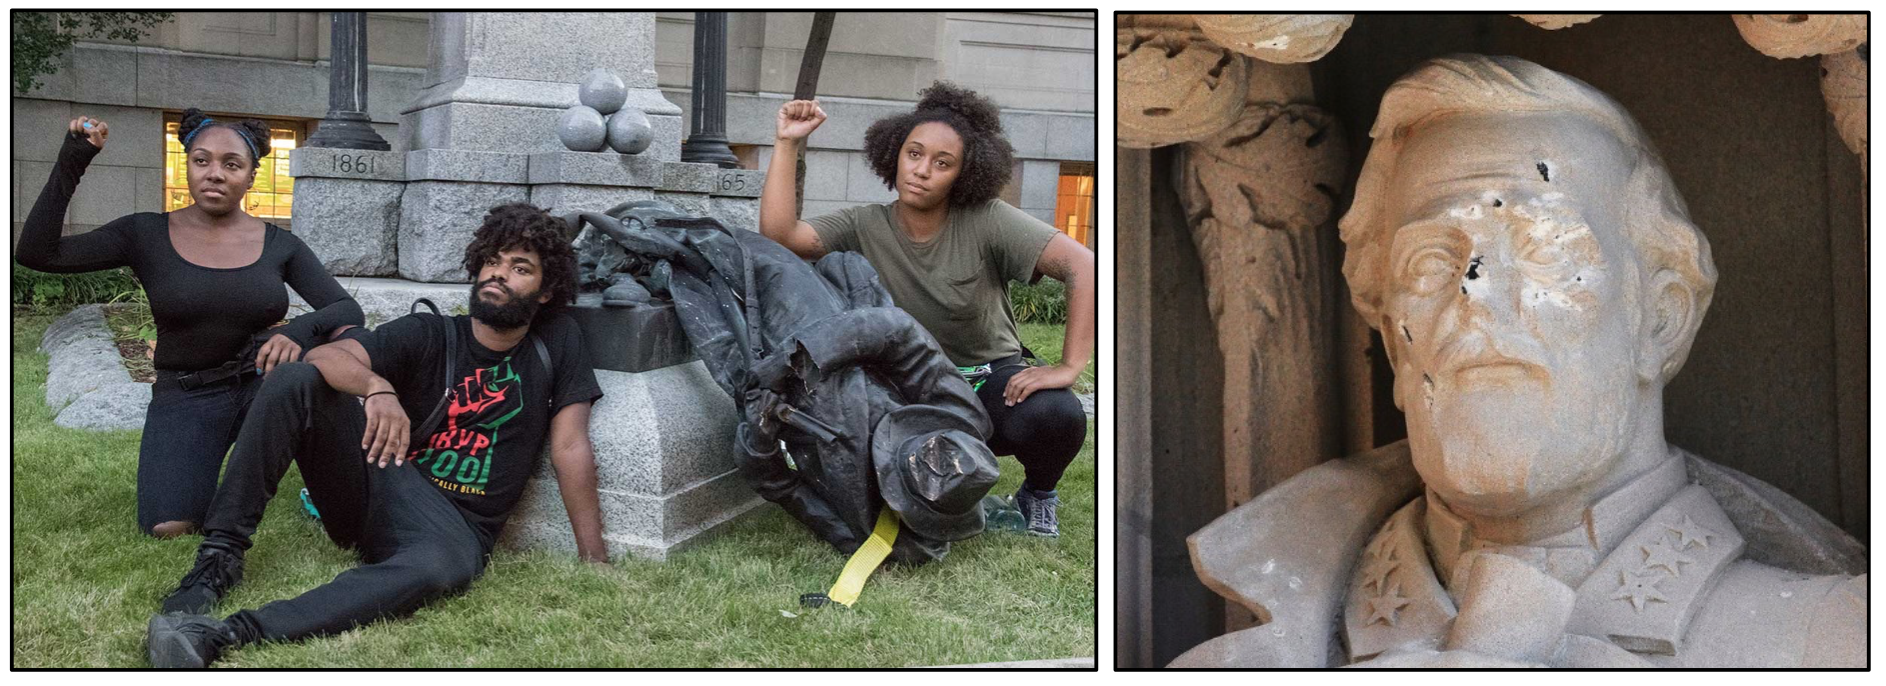 On the left, Protesters posing next to the toppled confederate statue in Durham, NC. On the right, defaced statue of Robert E. Lee.